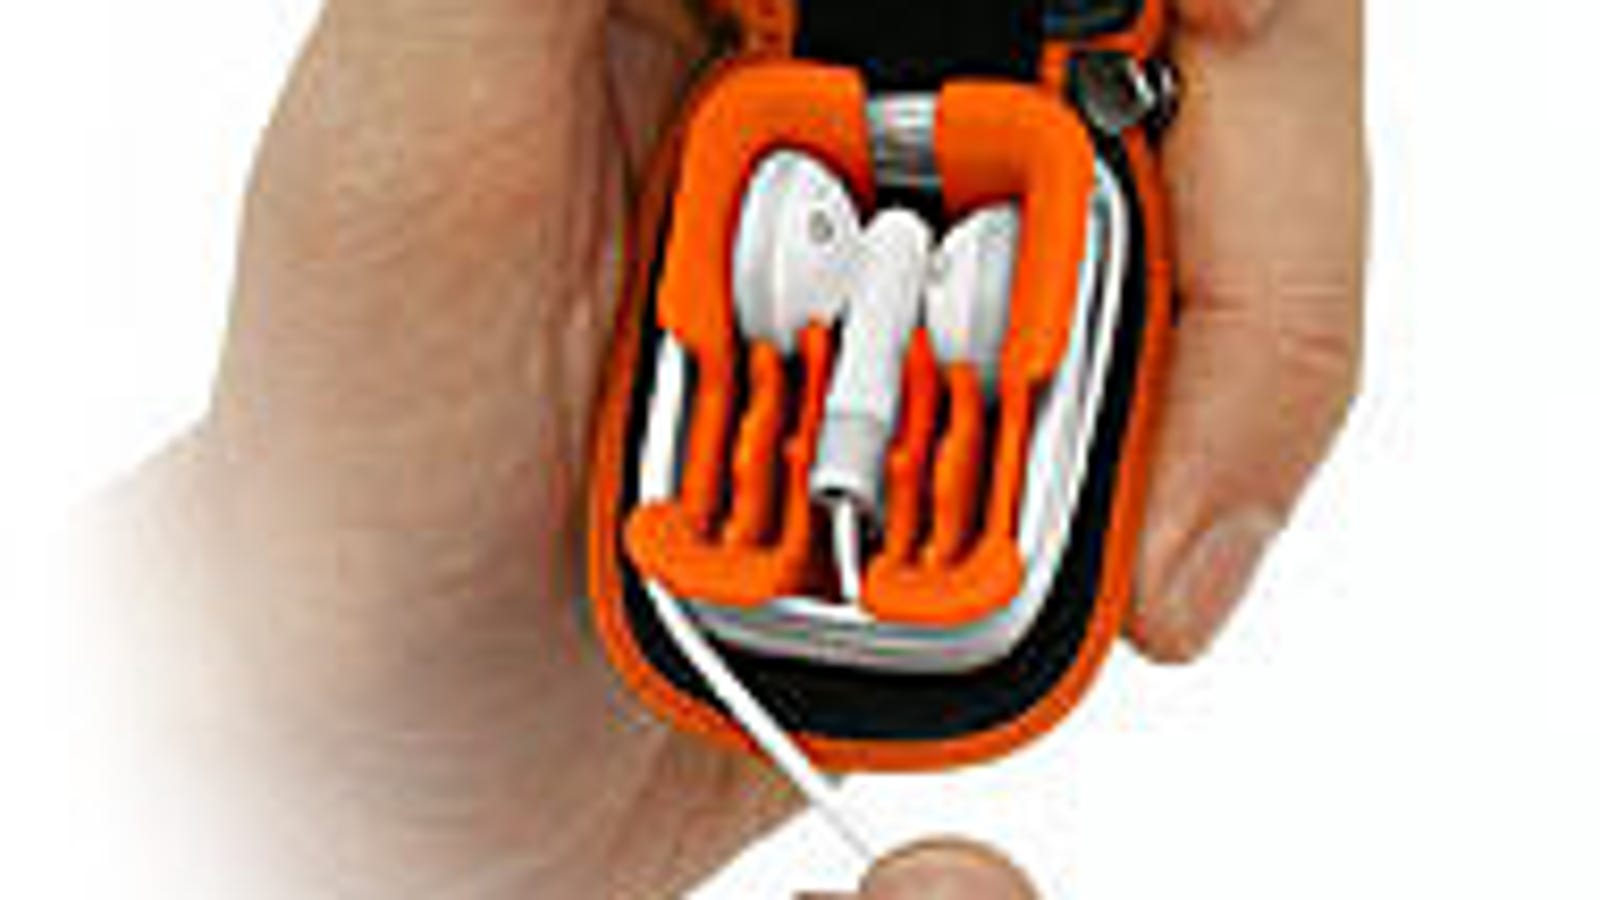 jvc earbuds orange - SendStation Ear Buddy